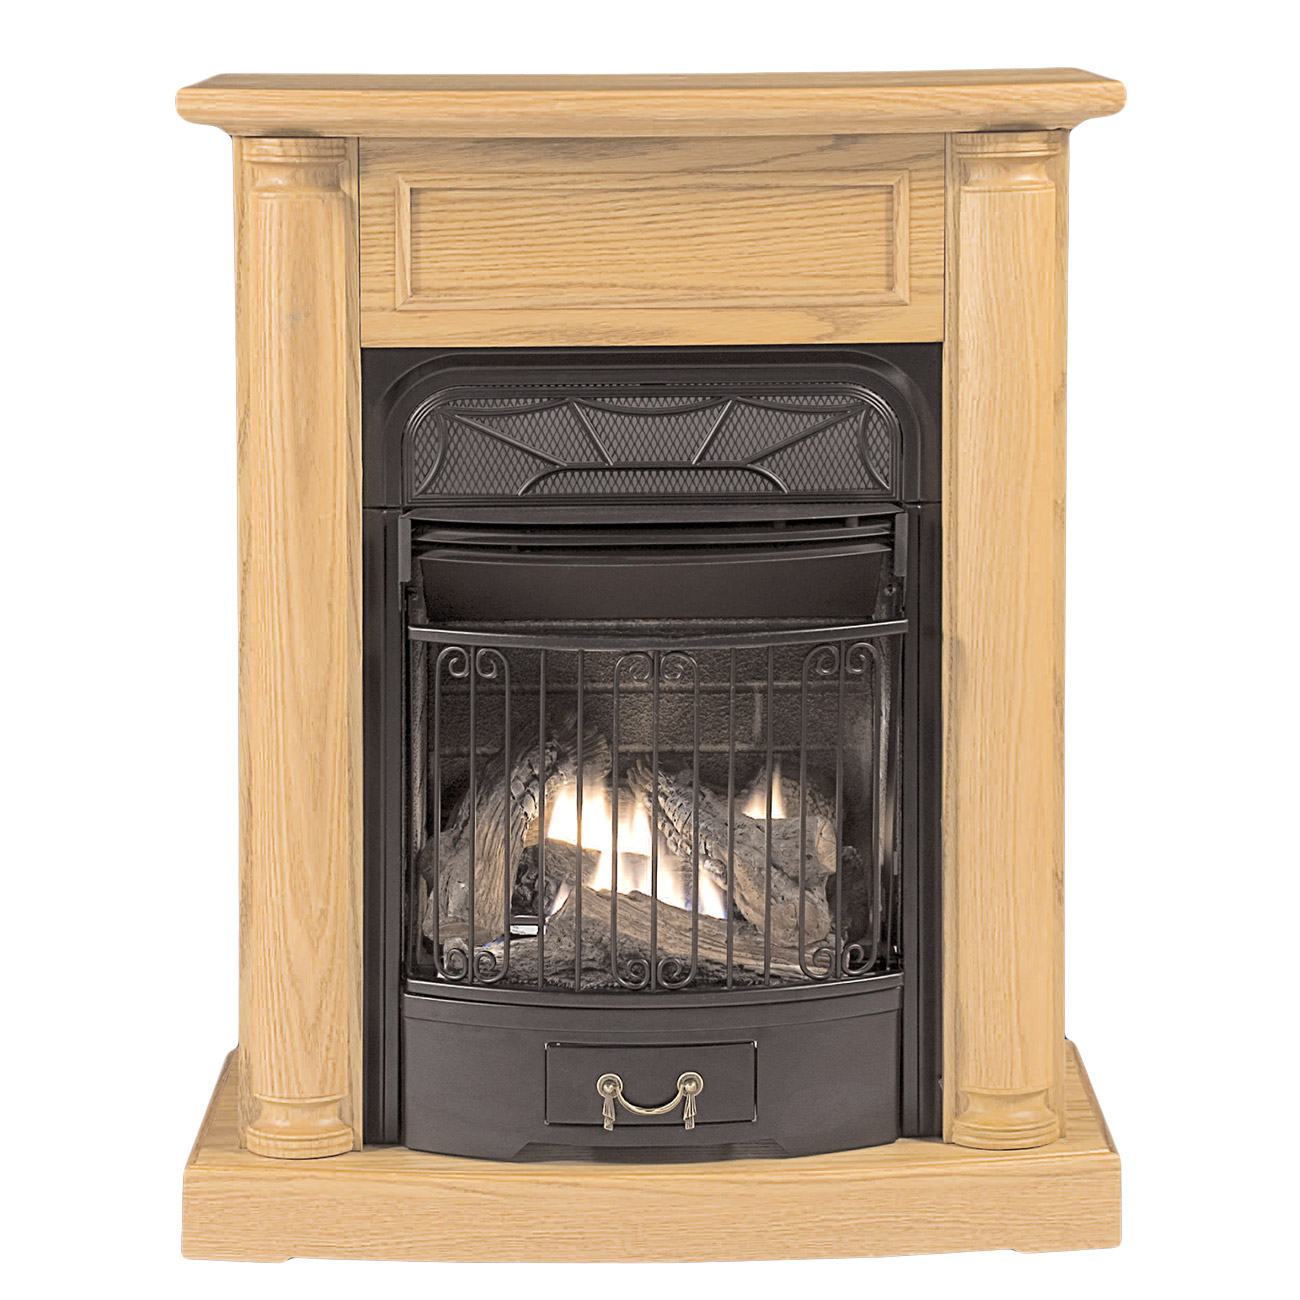 Ventless Fireplace Model Edp200t O